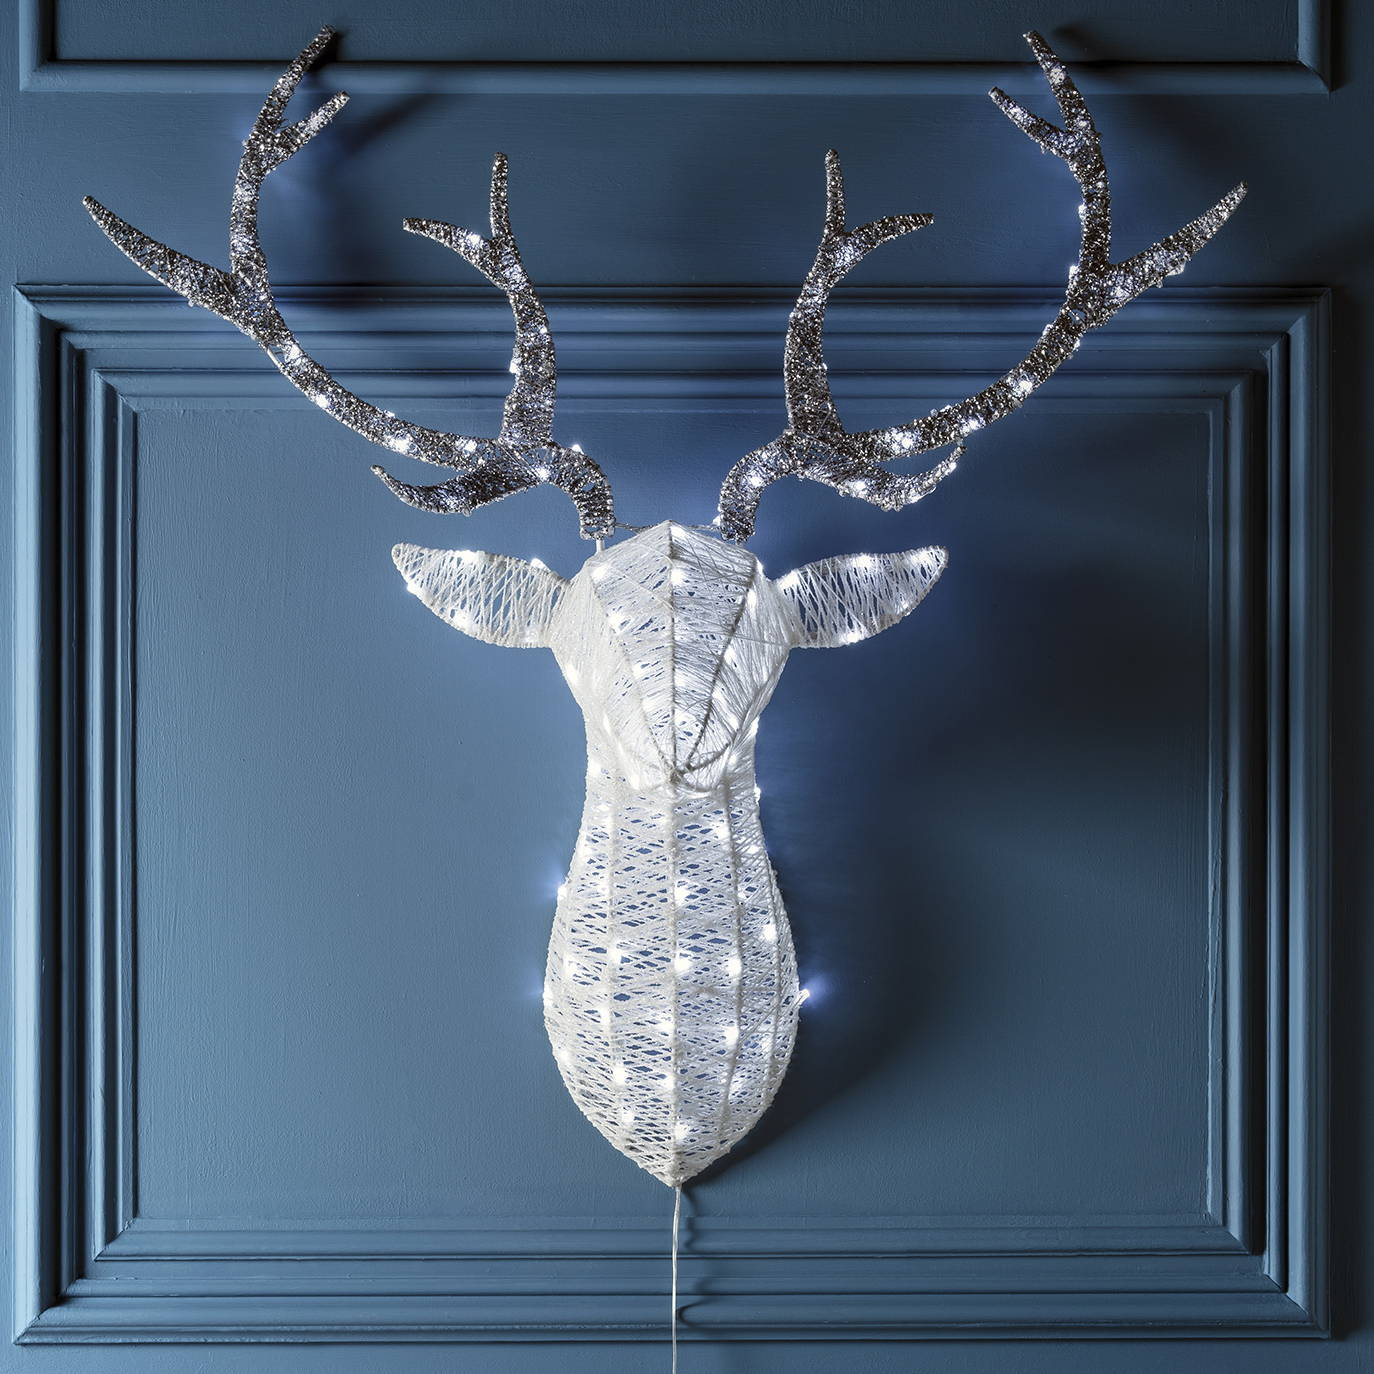 Glitter stag head silhouette Christmas light entwined with white LED hanging in a dining room